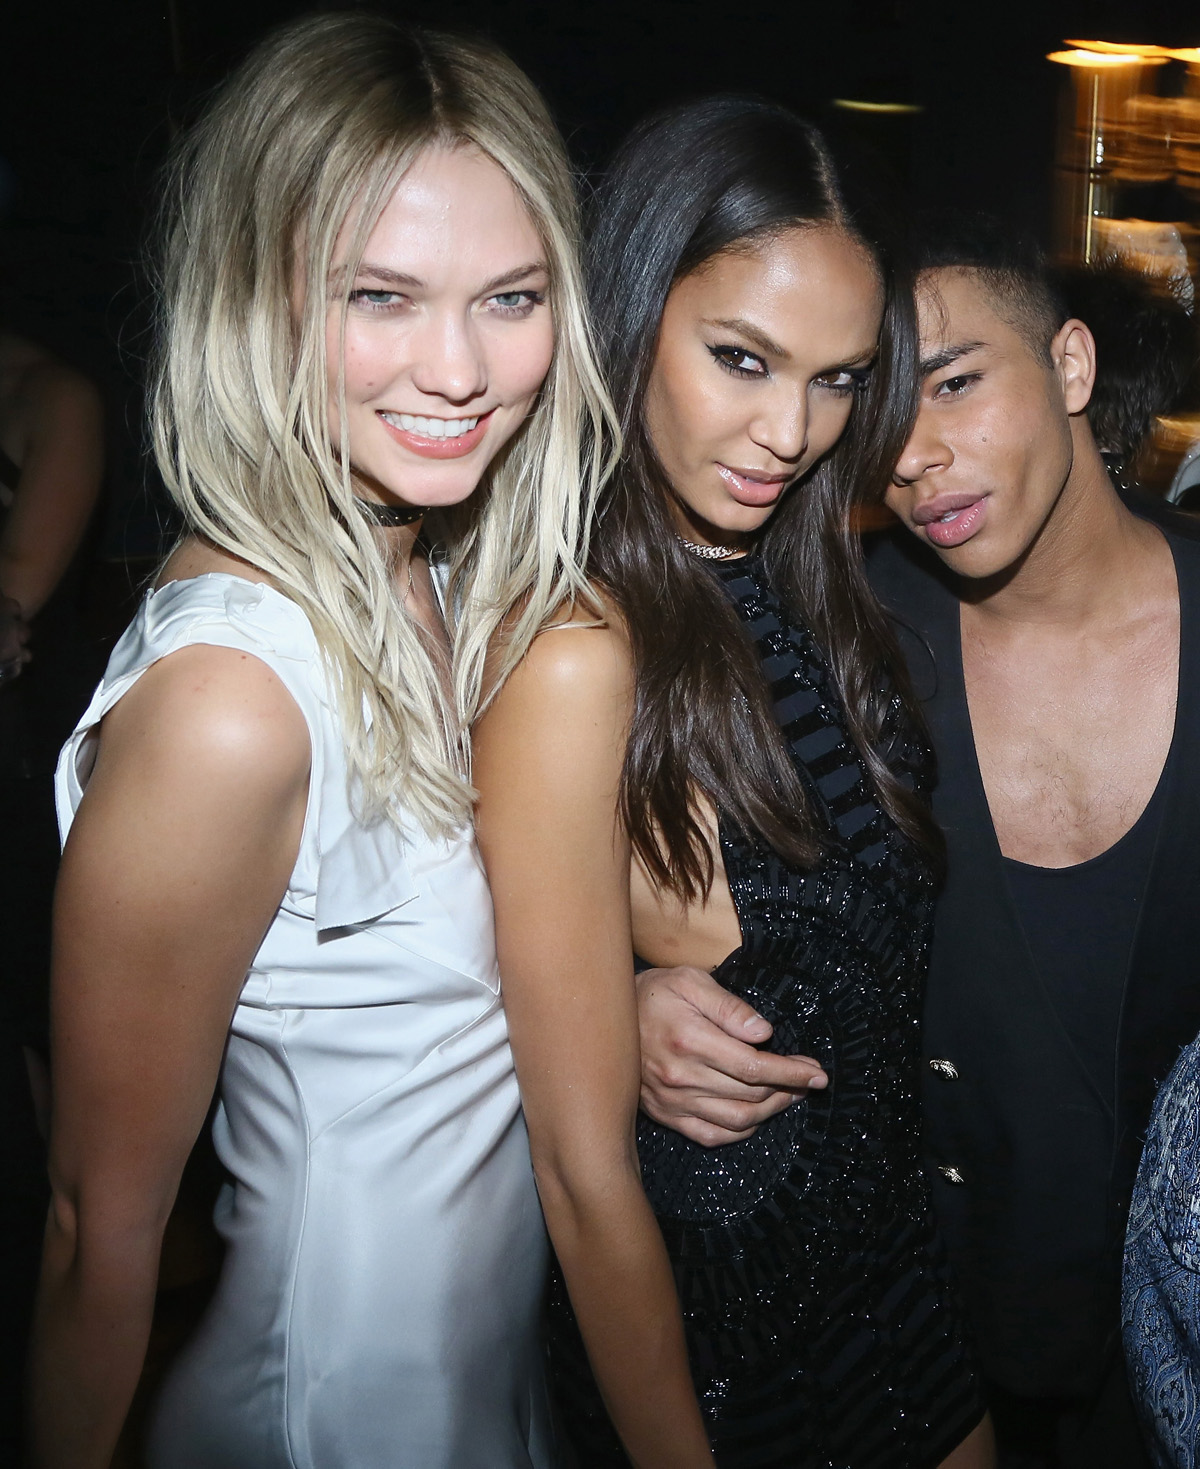 """PARIS, FRANCE - MARCH 03: Karlie Kloss, Joan Smalls and Olivier Rousteing attend the Balmain Aftershow Party as part of Paris Fashion Week Womenswear Automn/Winter 2016 at Restaurant Laperouse on March 3, 2016 in Paris, France. (Photo by Victor Boyko/WireImage)"""